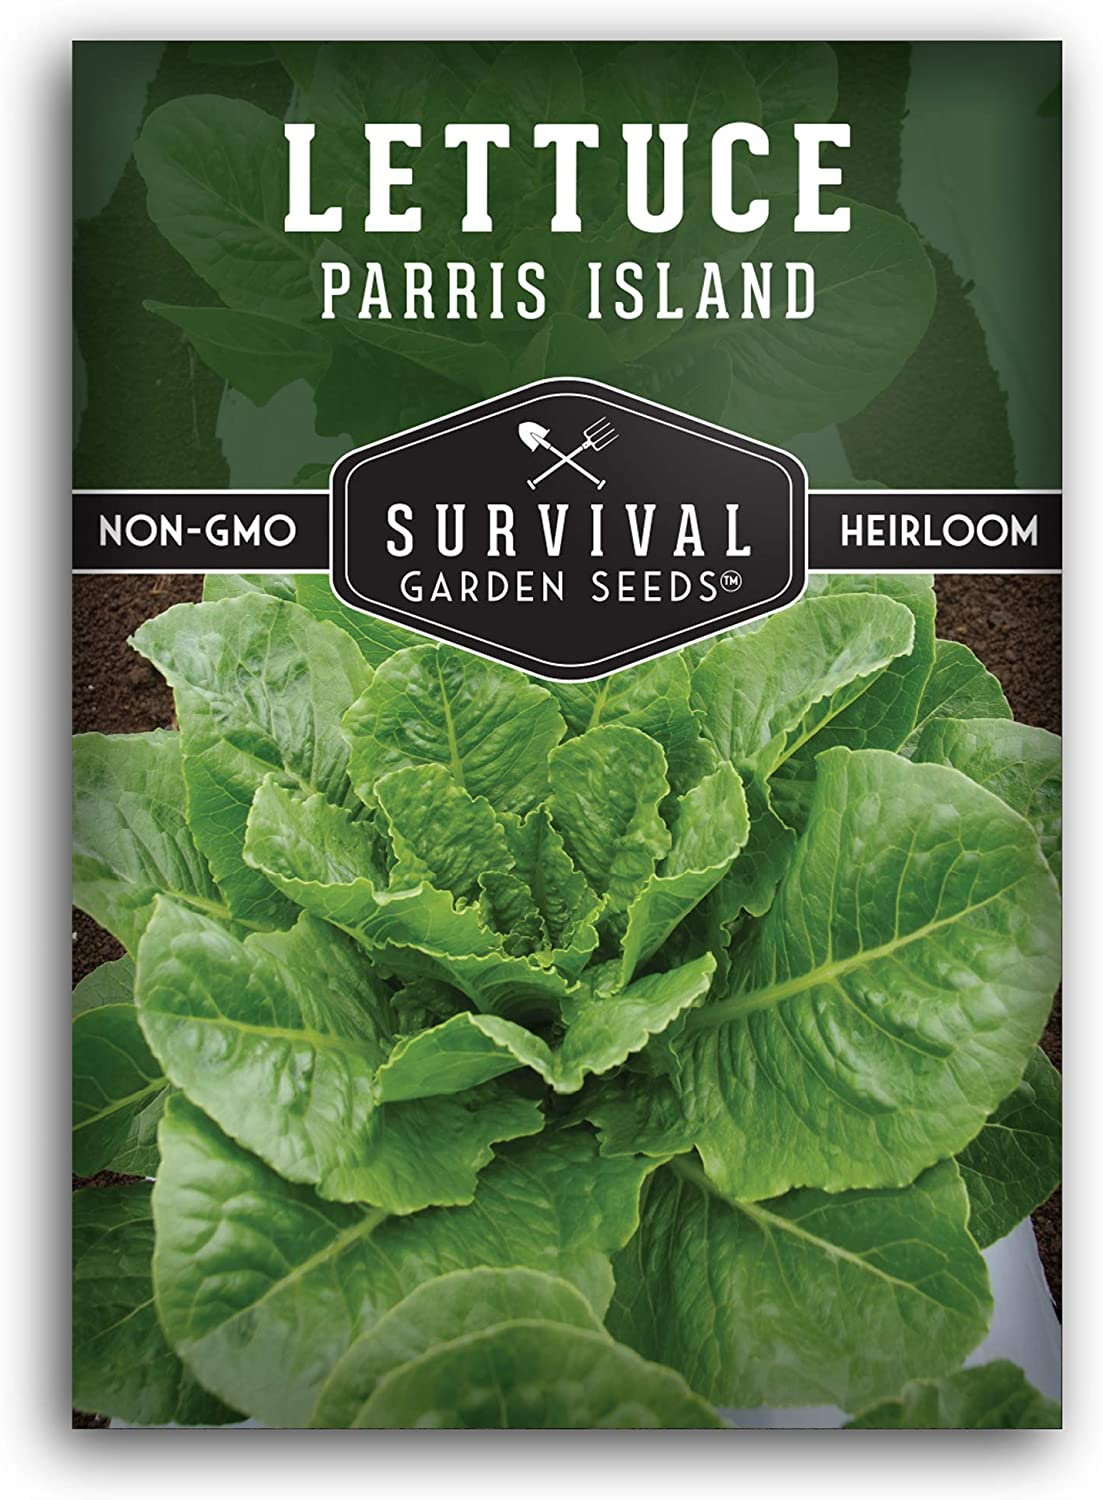 Survival Garden Seeds - Parris Island Cos Lettuce Seed for Planting - Packet with Instructions to Plant and Grow in Your Home Vegetable Garden - Non-GMO Heirloom Variety